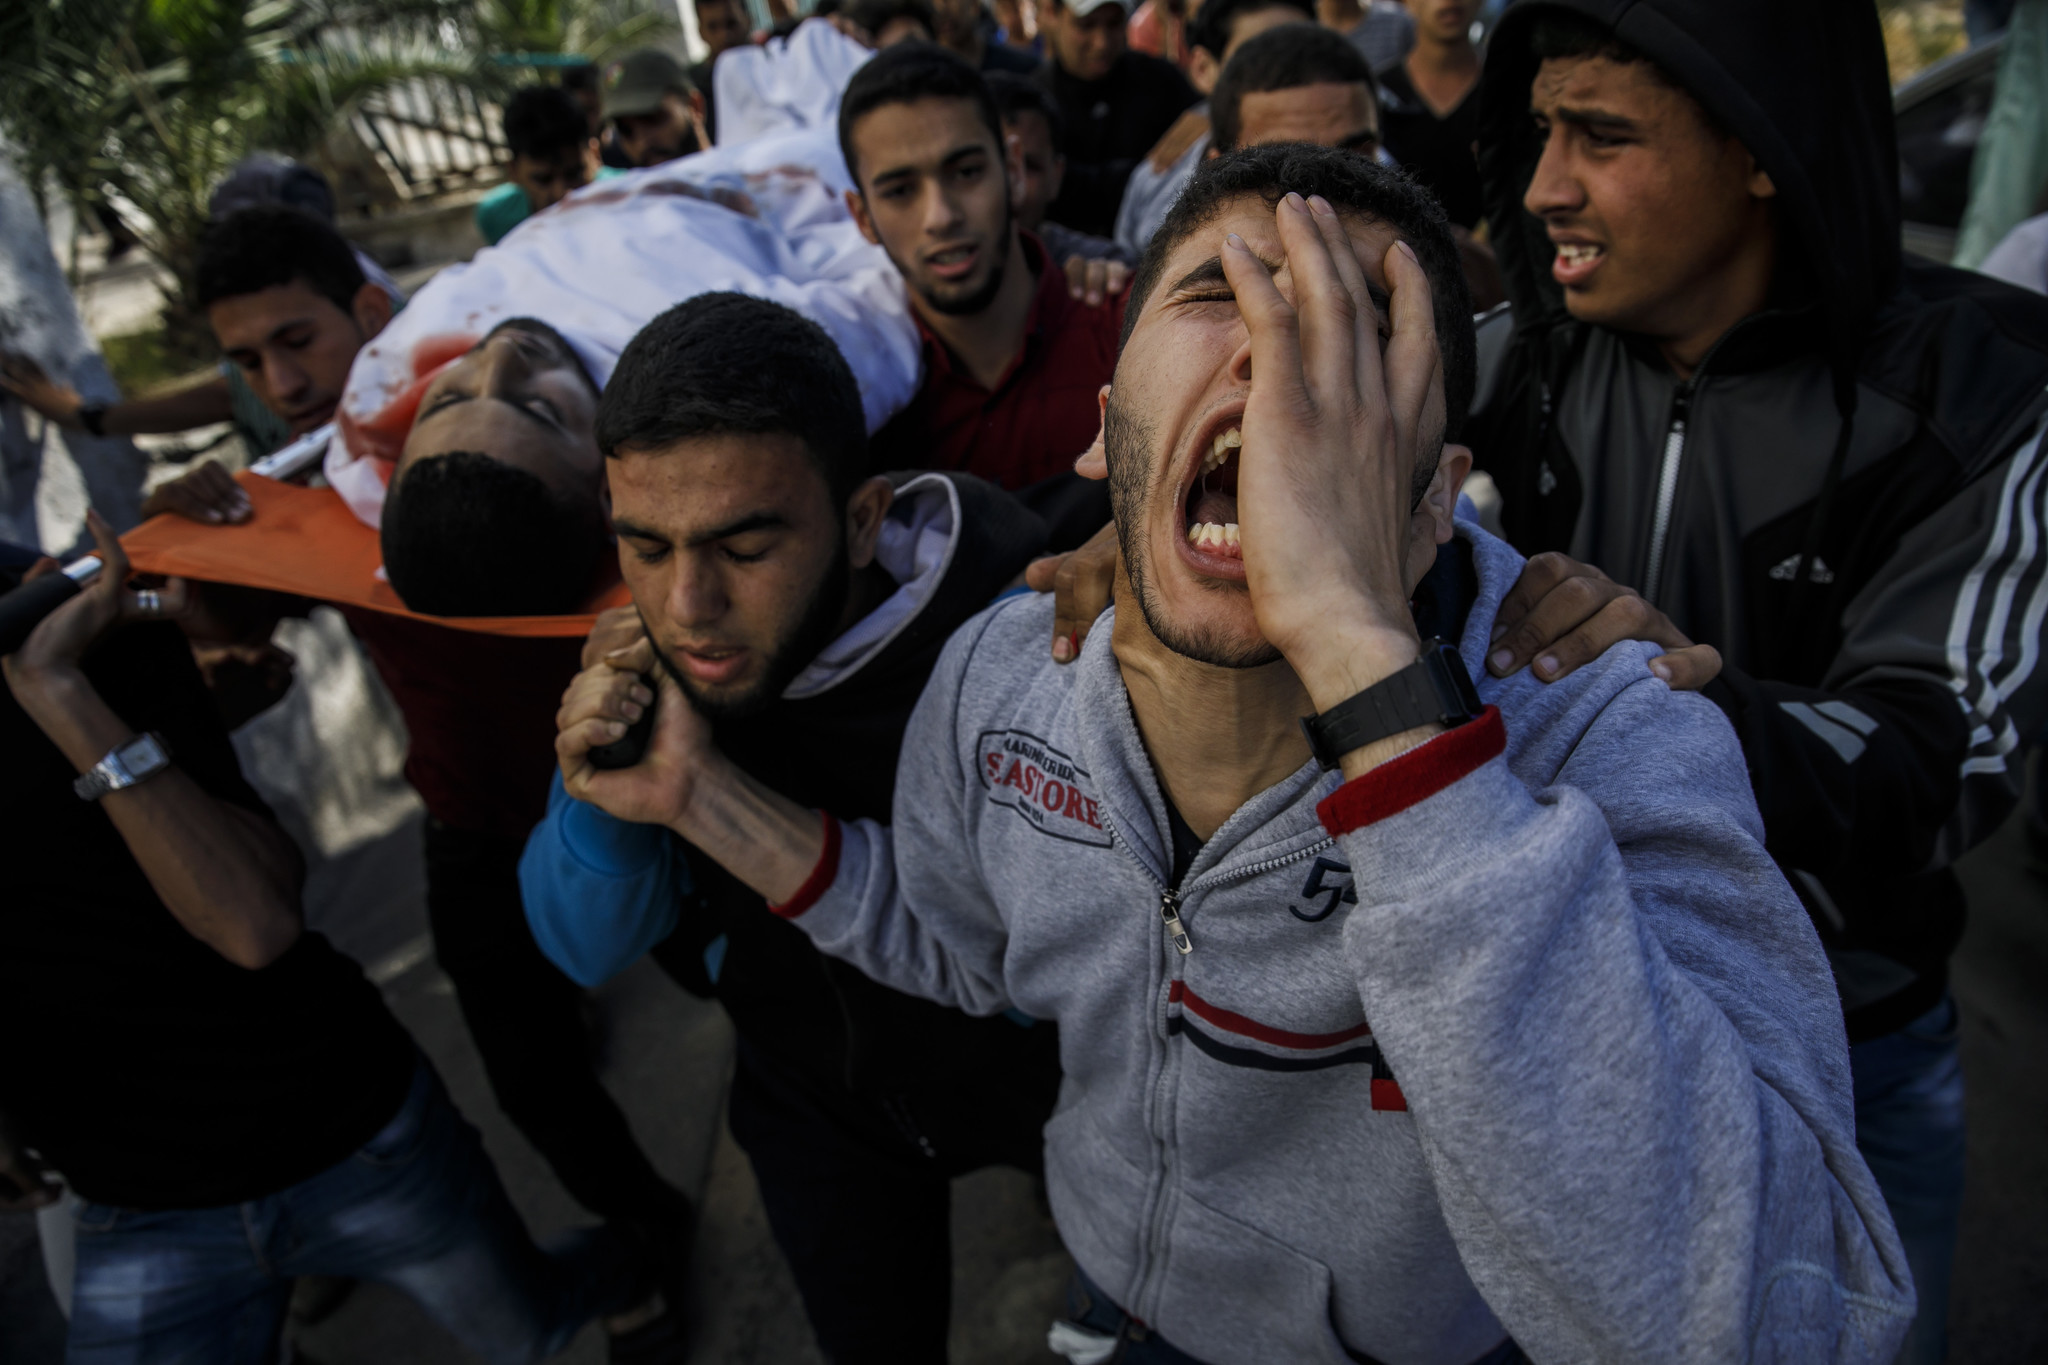 GAZA CITY, GAZA — MONDAY, MAY 14, 2018: Relatives of Taher Ahmed Madi, 25, carry his body from the